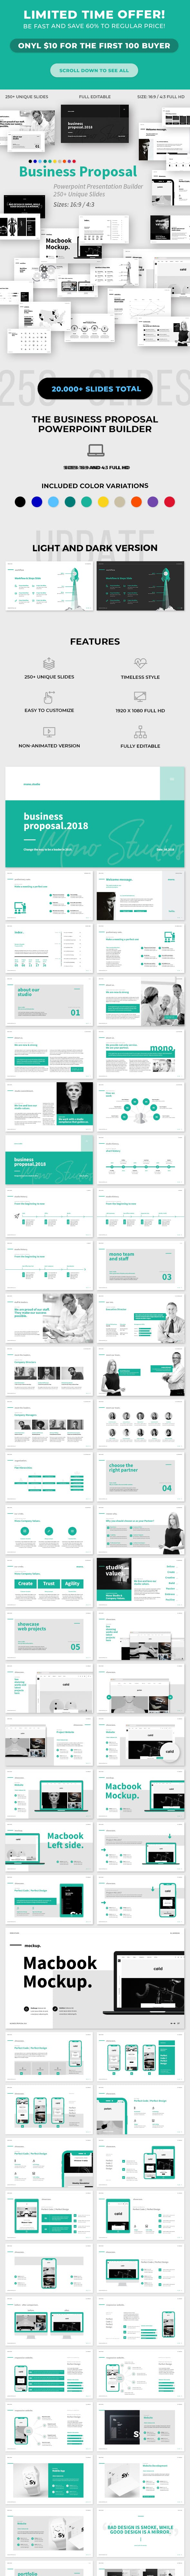 Business Proposal Powerpoint Template By Egotype Graphicriver